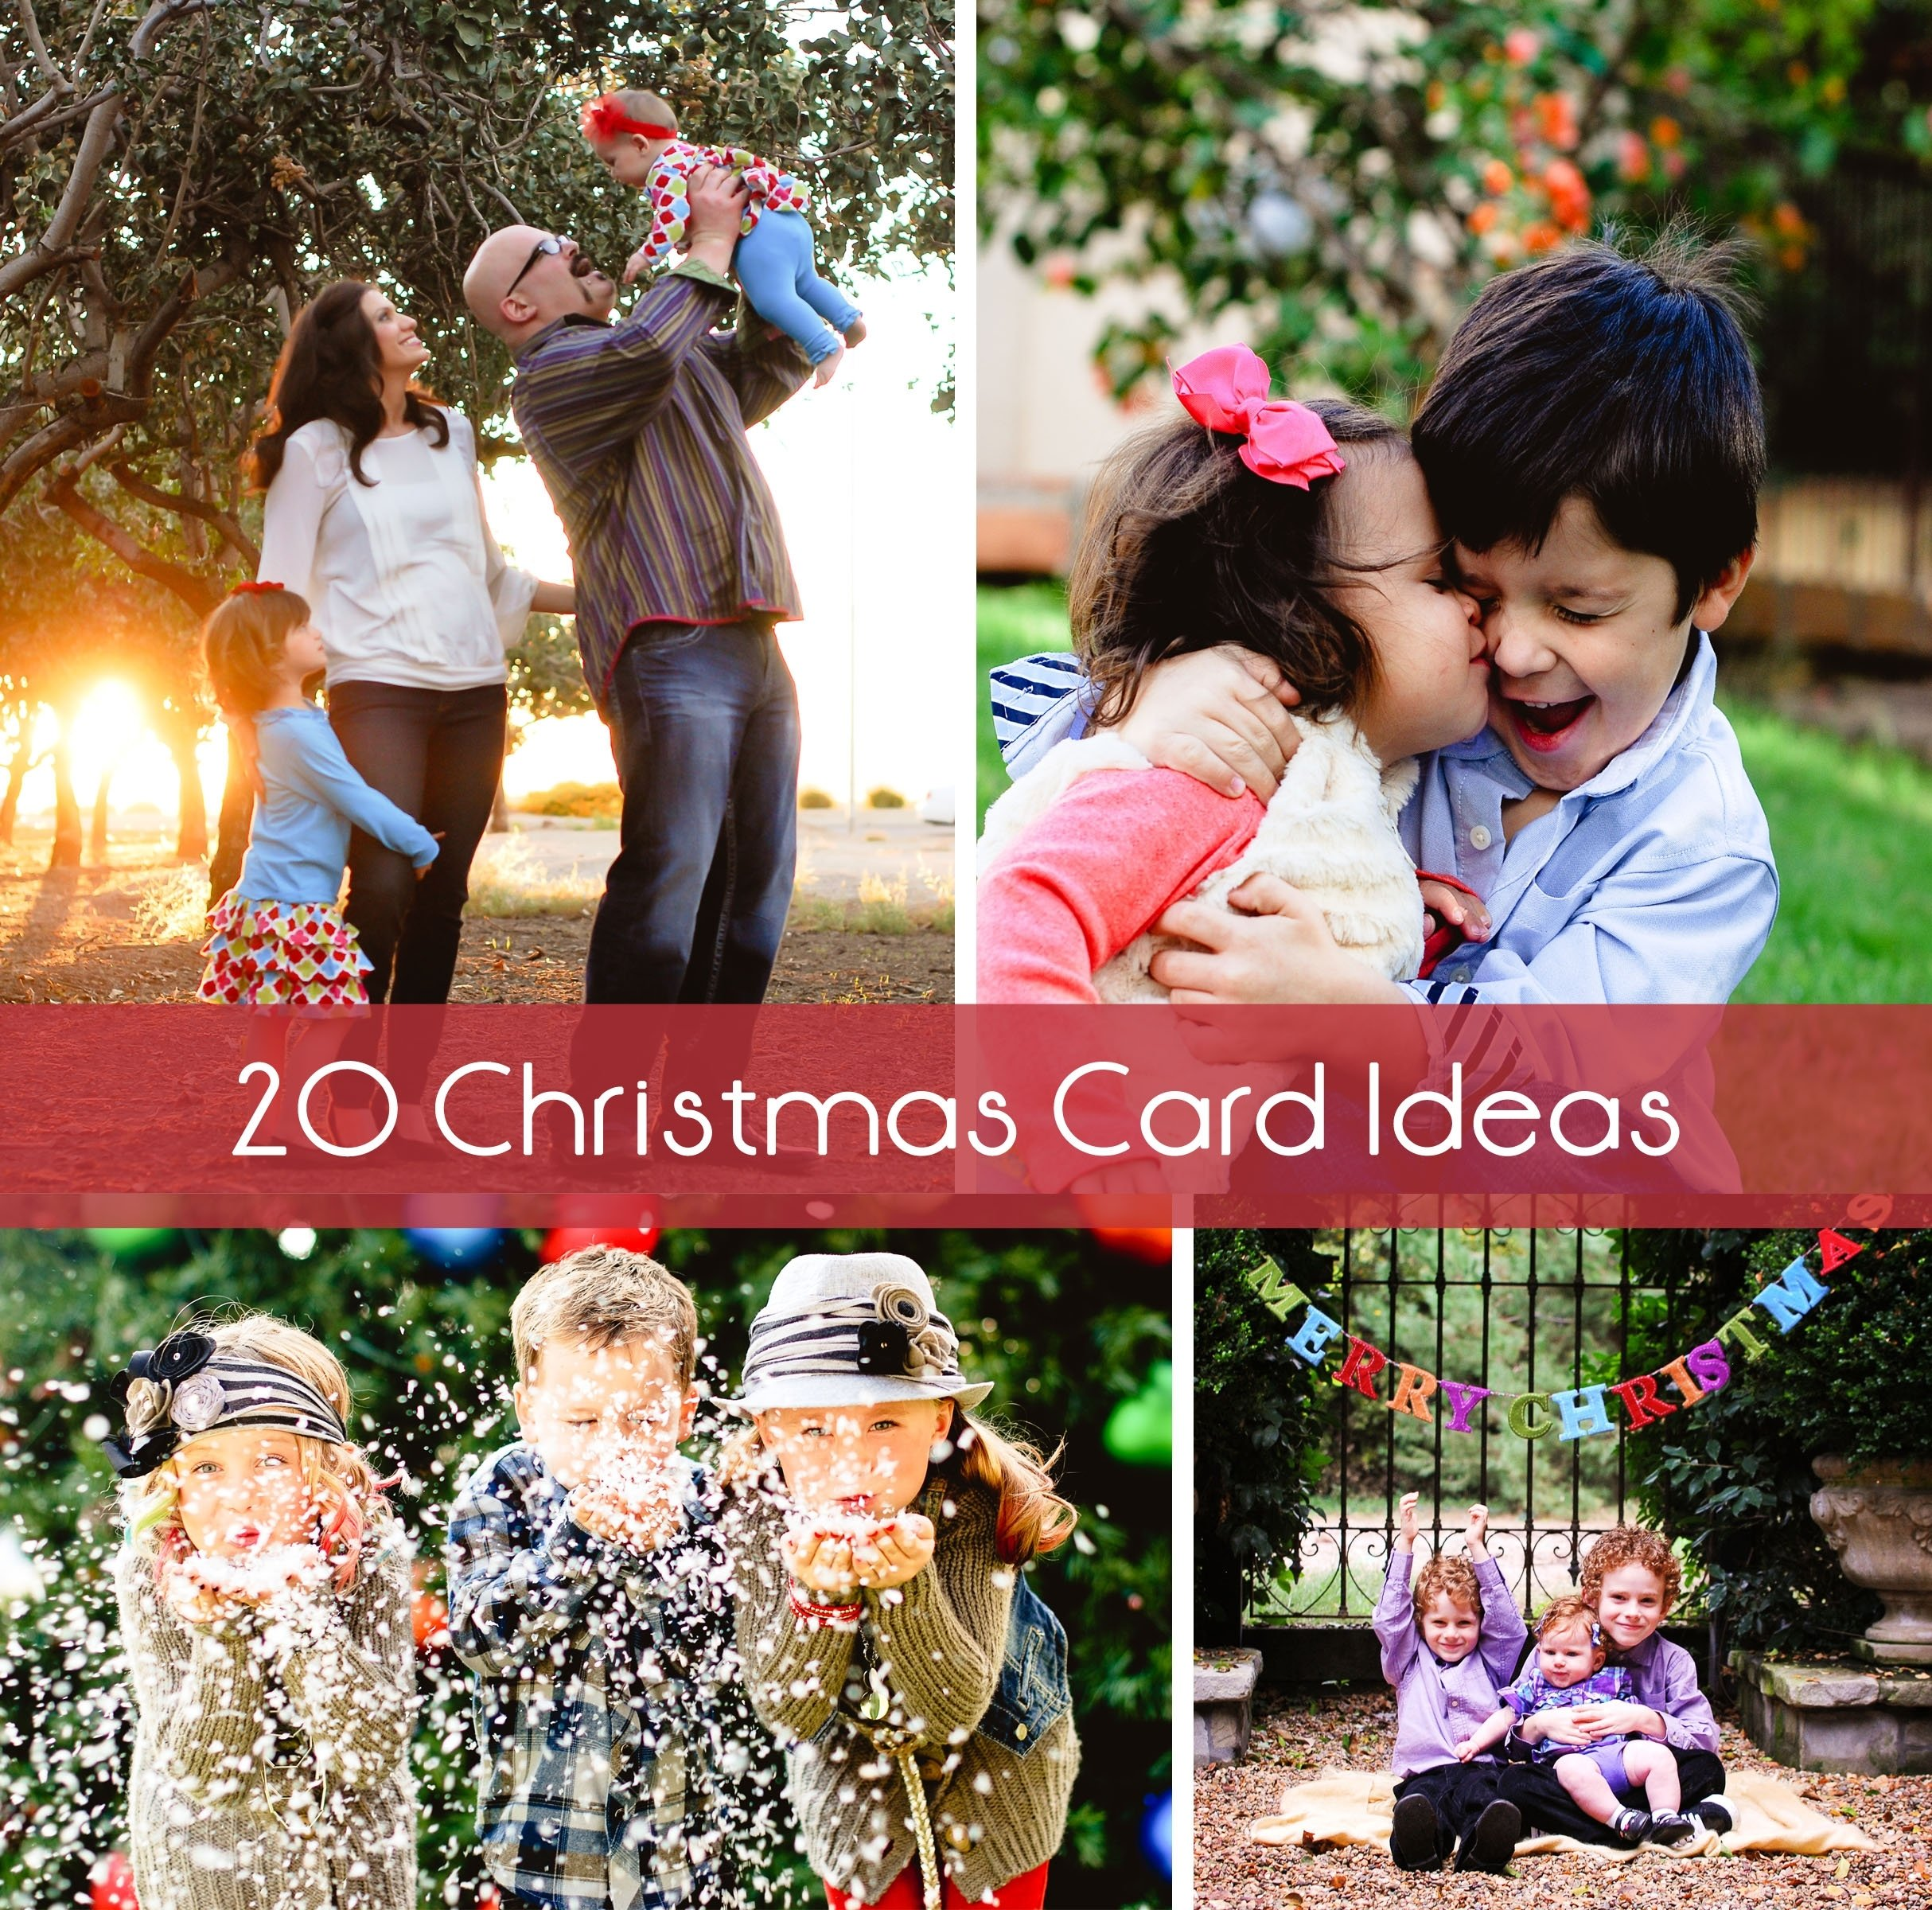 10 Unique Family Christmas Card Picture Ideas 20 christmas card ideas 2